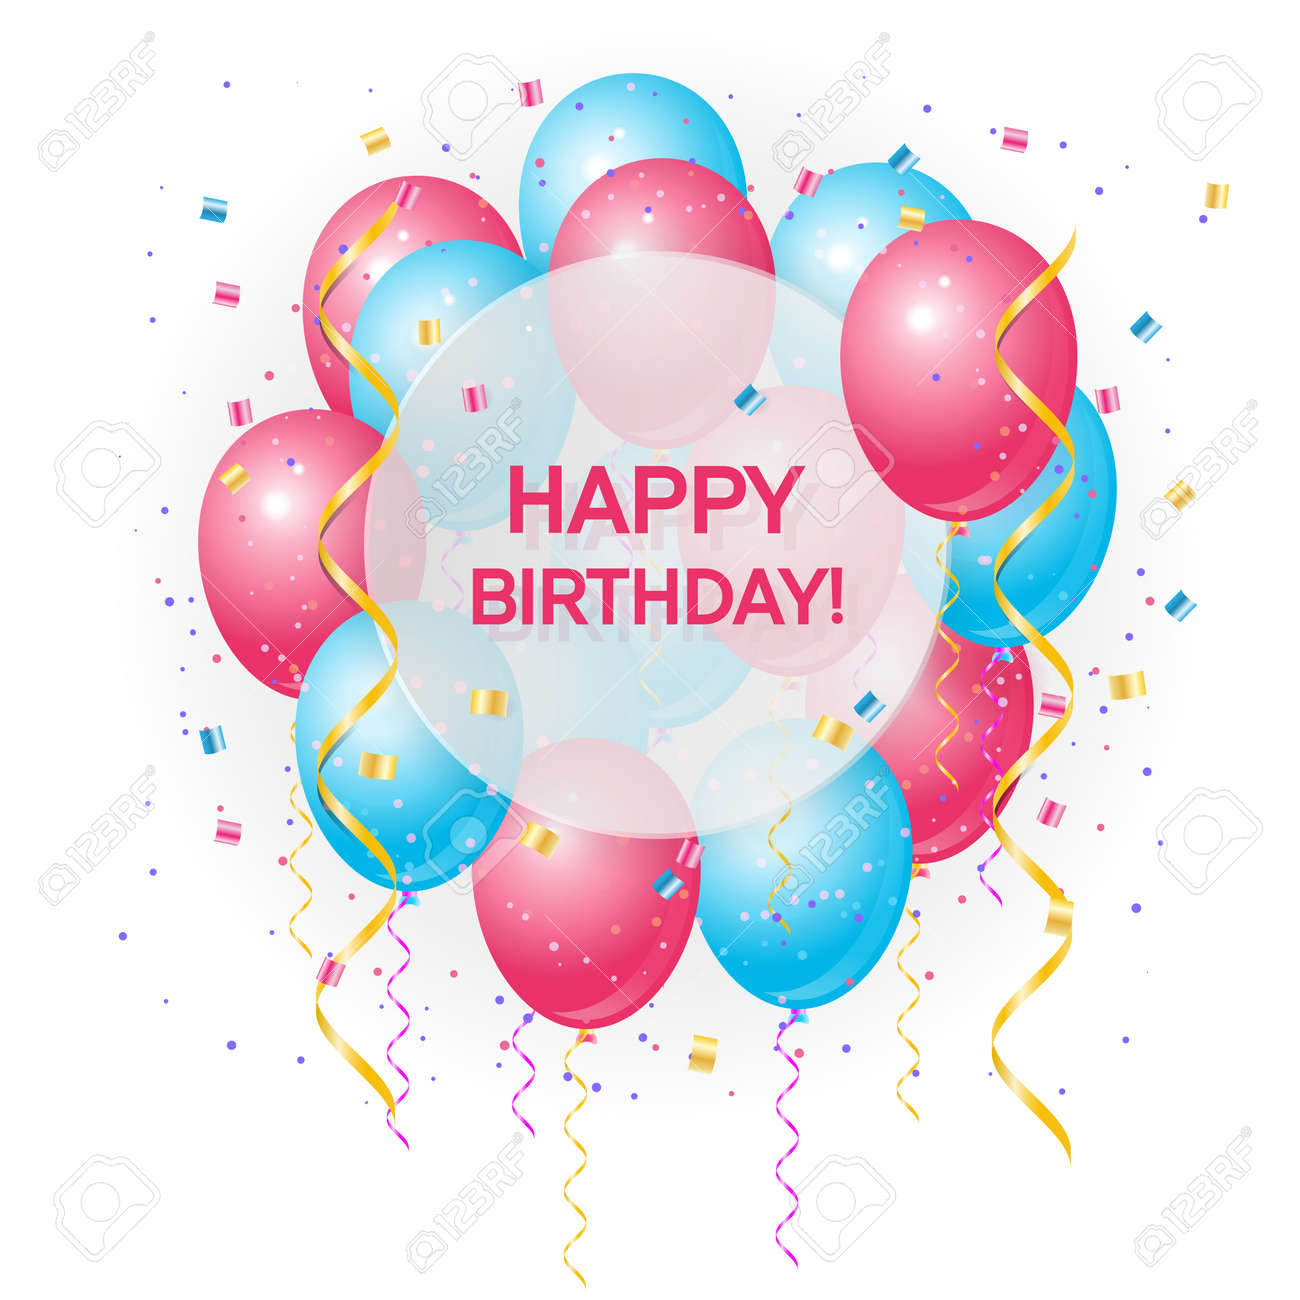 Happy Birthday Greeting Card With Volume Colored Balloons And Sample Text In The Circle Can